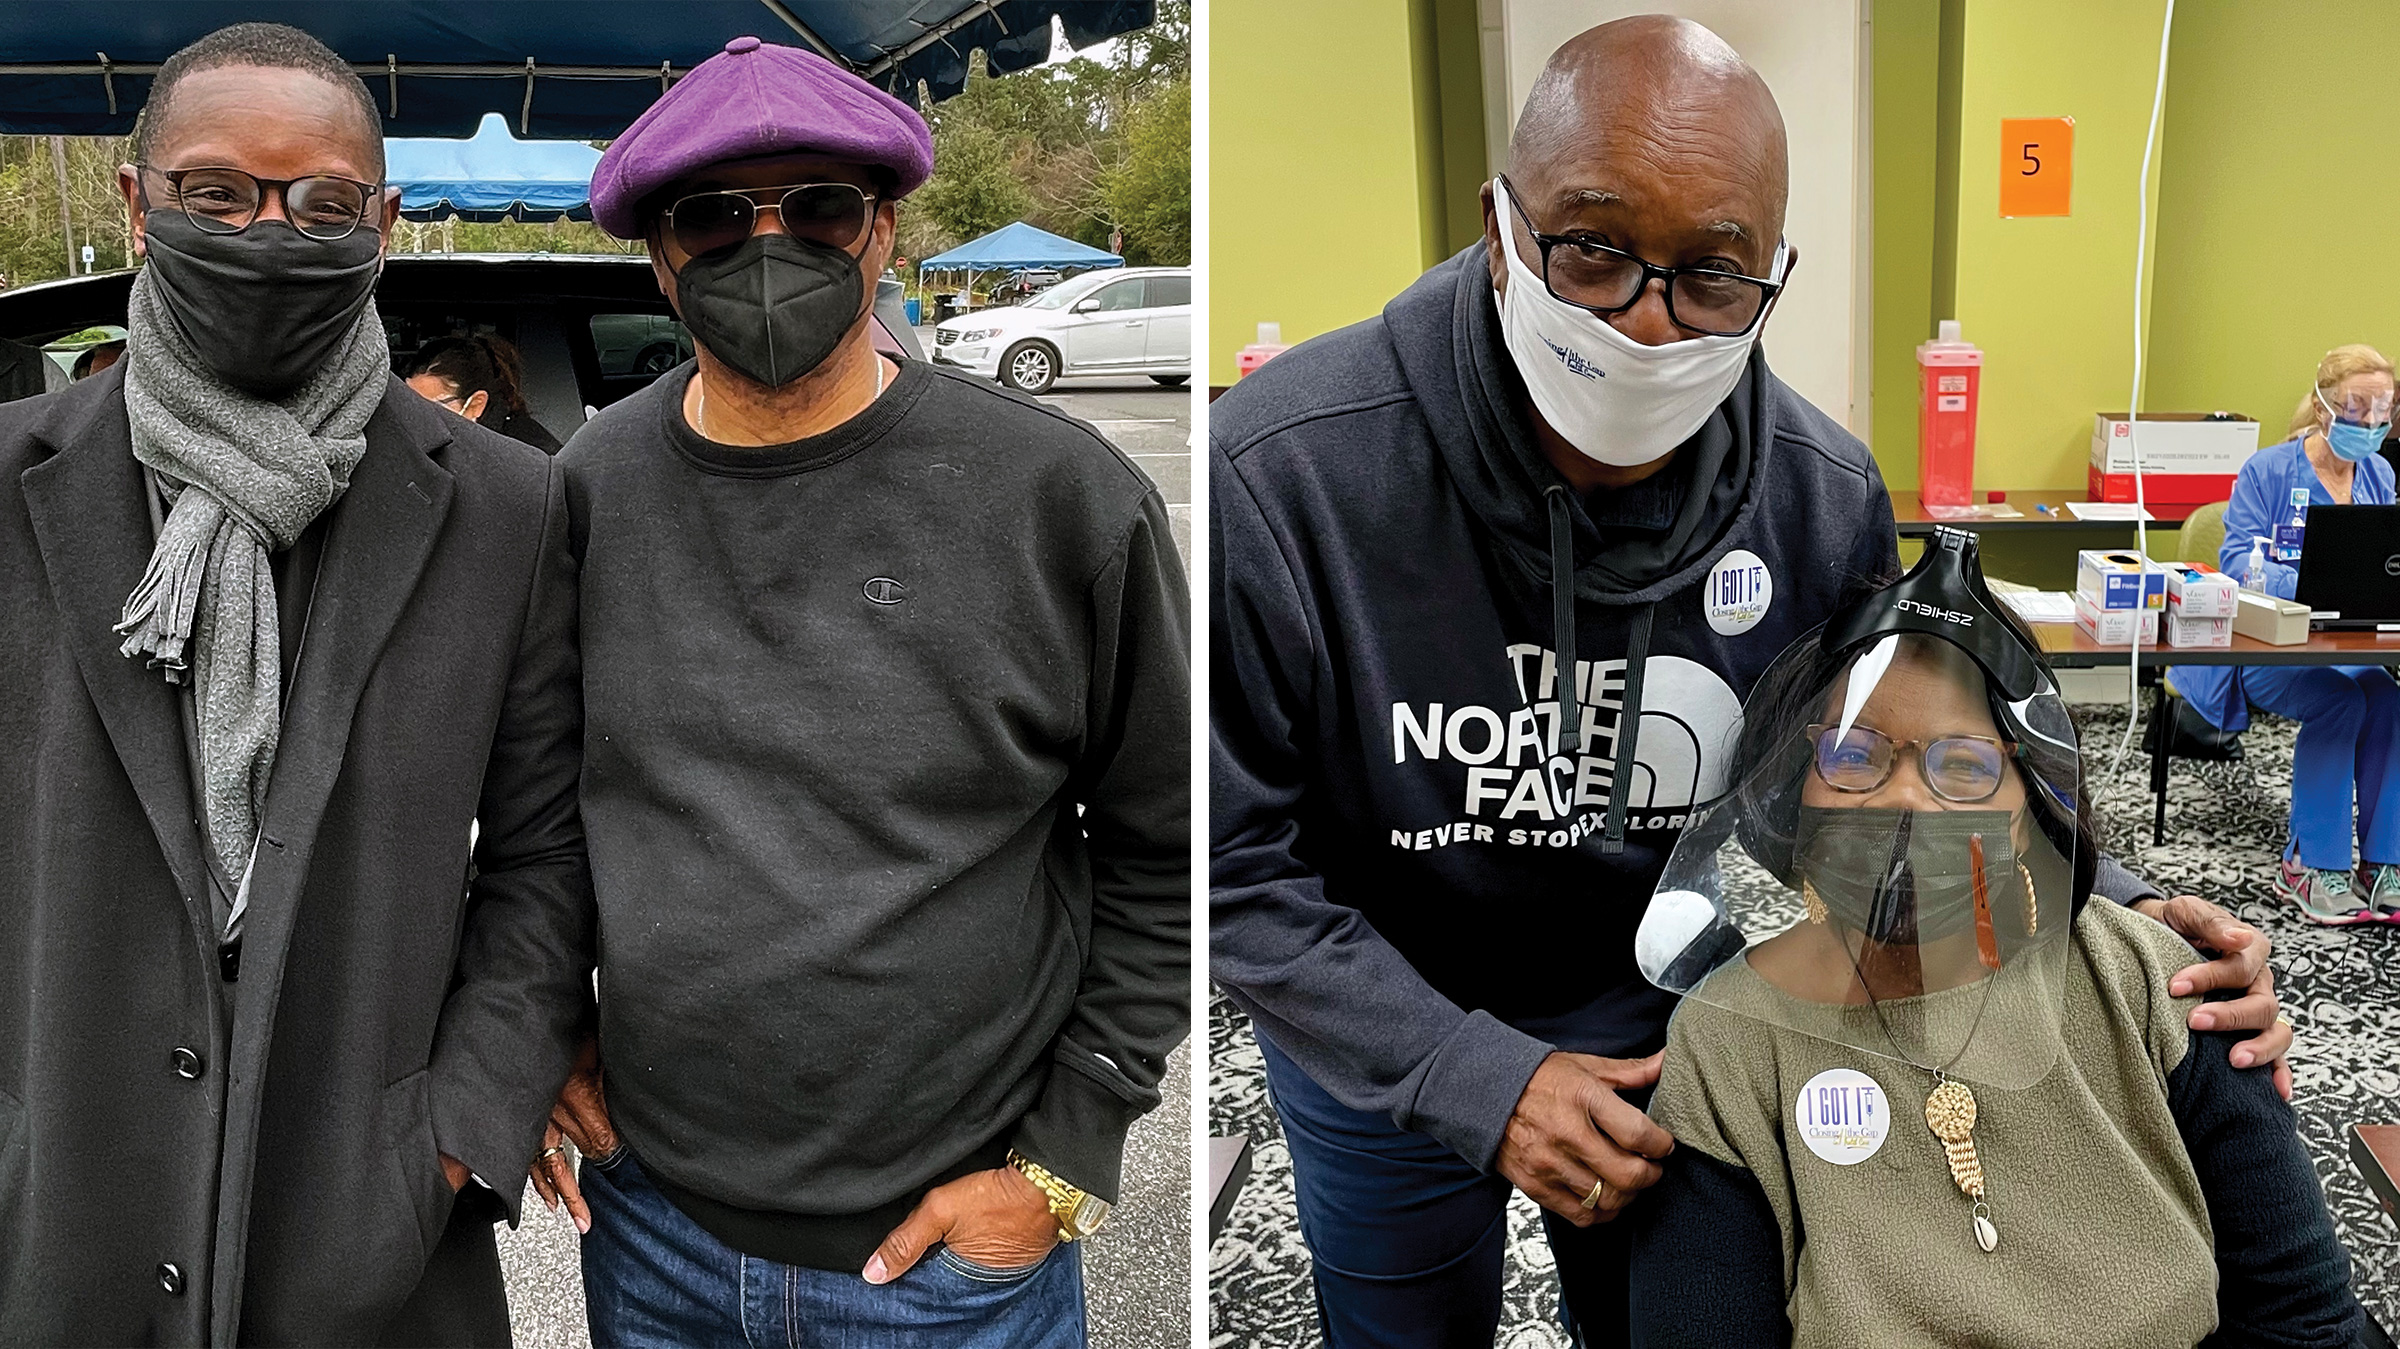 Left: Pastor Kylon Middleton, with Dr. Thaddeus Bell at East Cooper Medical Center in Mount Pleasant, S.C. on March 13; Right: Dr. Thaddeus Bell, with Henrietta Snype at East Cooper Medical Center in Mount Pleasant, S.C. on March 19.